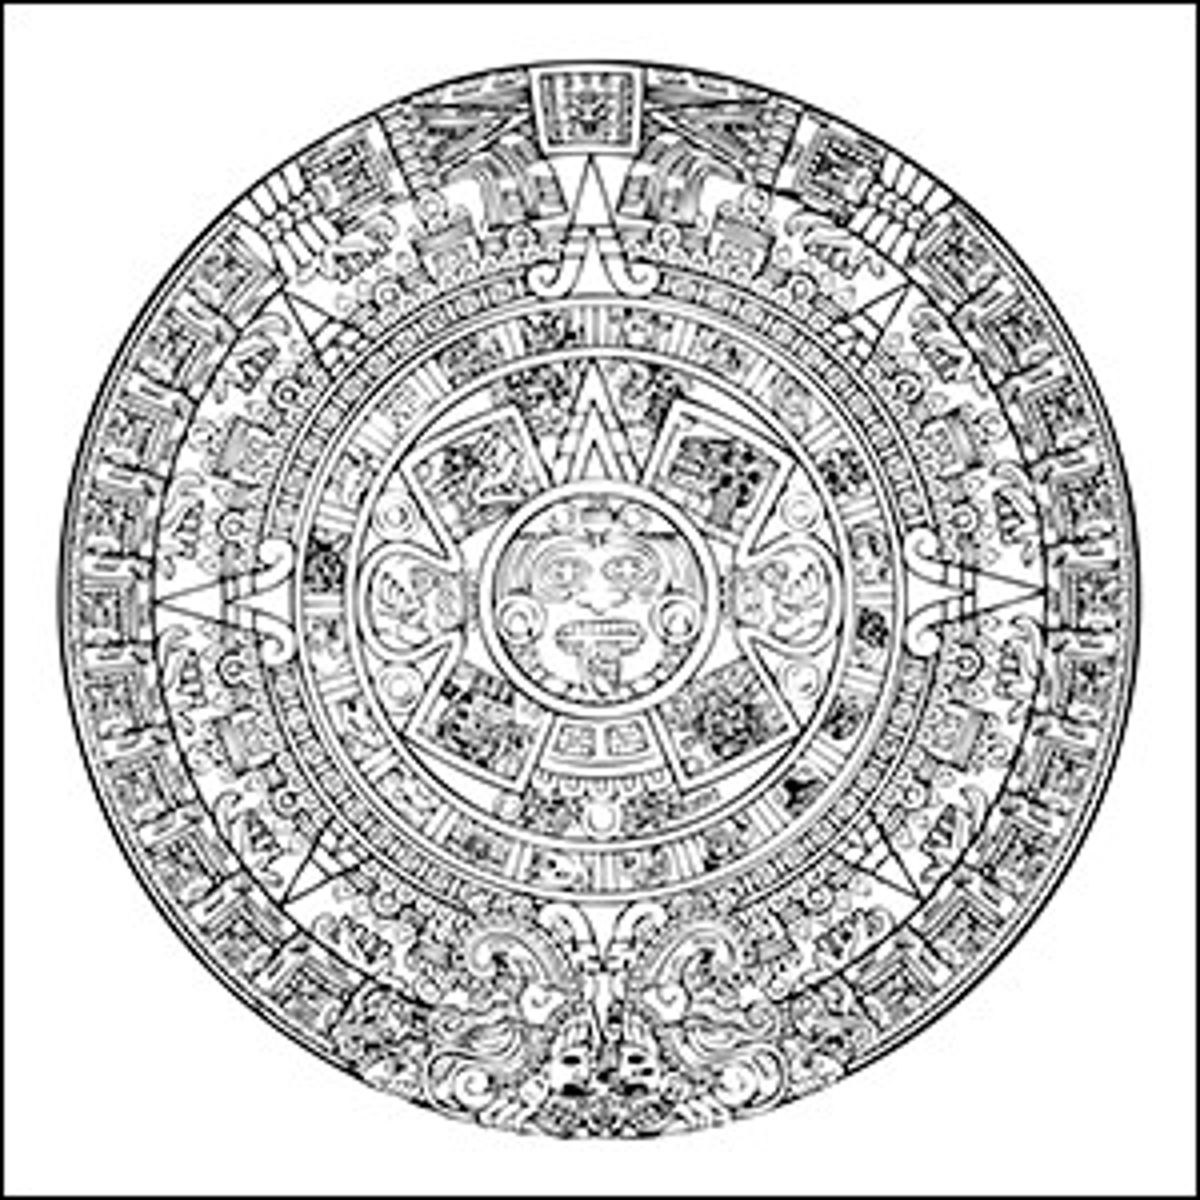 A line art drawing of the Aztec sun calendar.